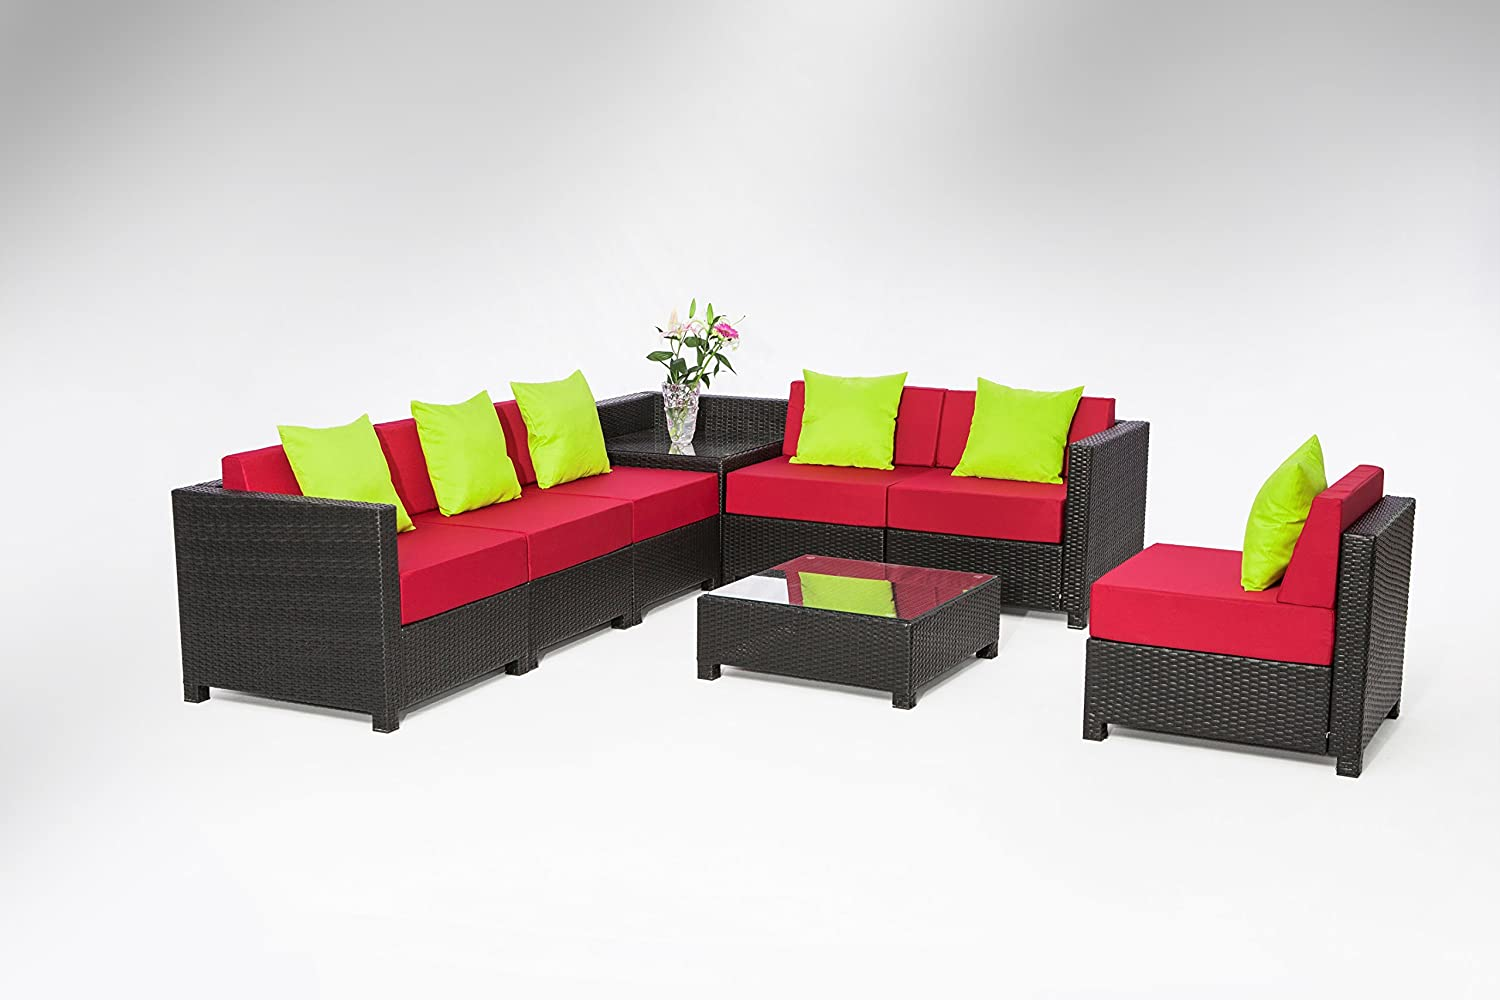 Exacme 8 pcs Luxury Wicker Patio Sectional Indoor Outdoor Sofa Furniture set Red